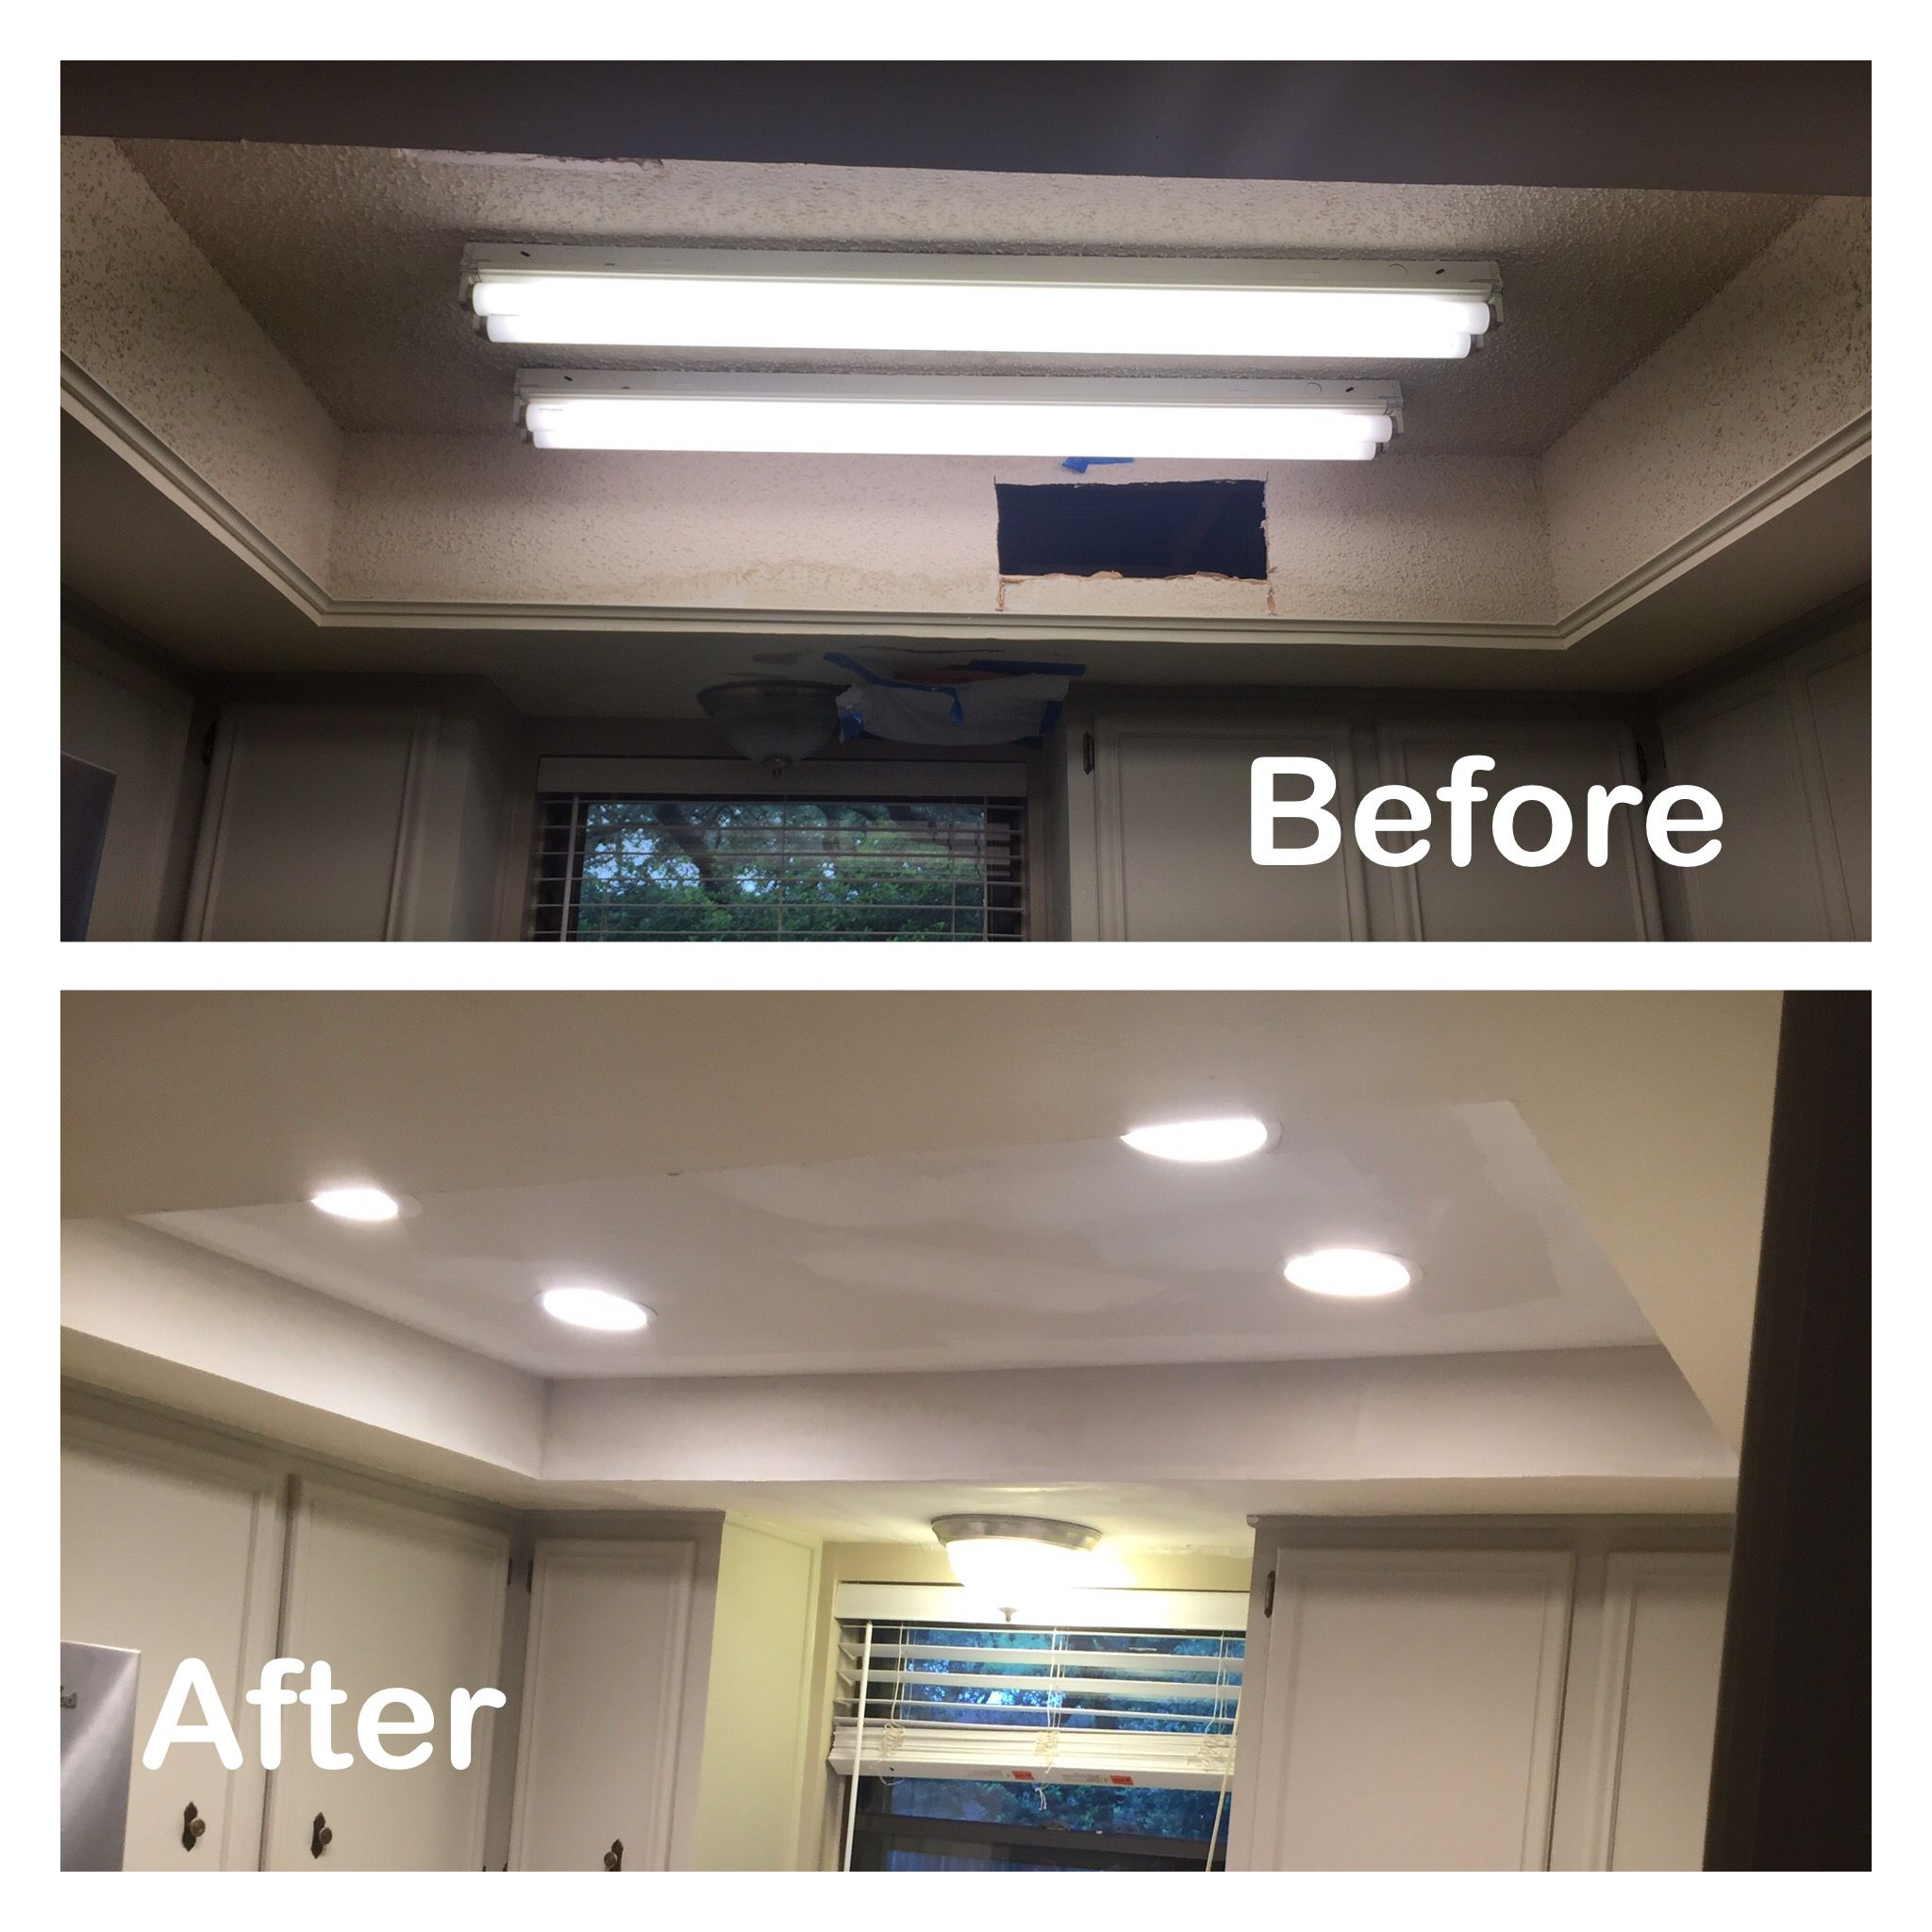 1970s kitchen light box before and after Fluorescent light ...